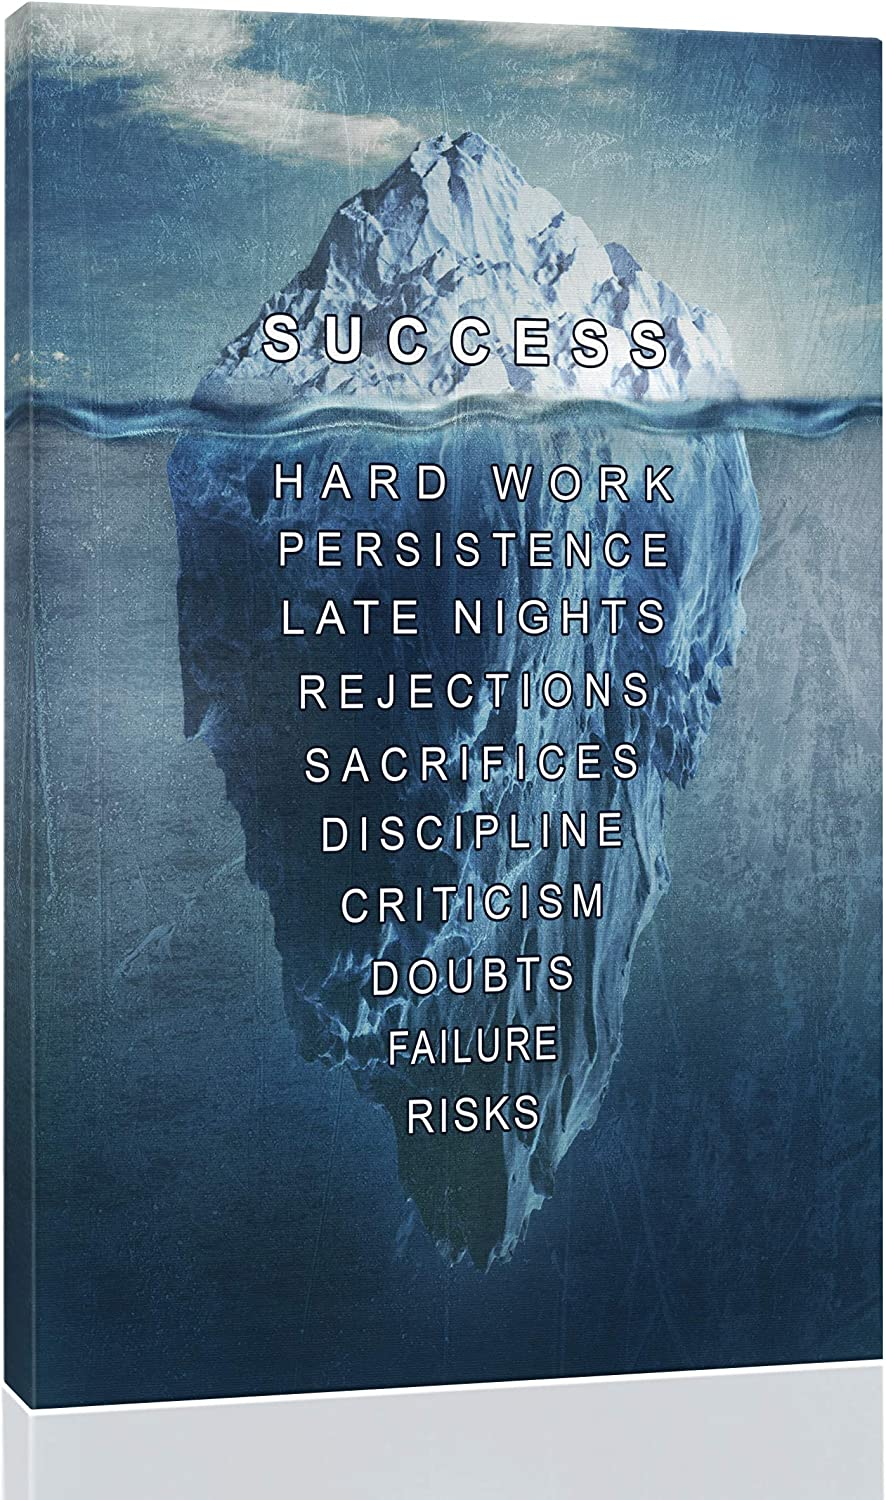 "Eqoya Inspirational Wall Art Posters for Home Office, College Dorm, Motivational Quote Decor Canvas, Encouraging Positive Growth Mindset Quotes for Classroom (12""W x 18""H Success - Iceberg)"